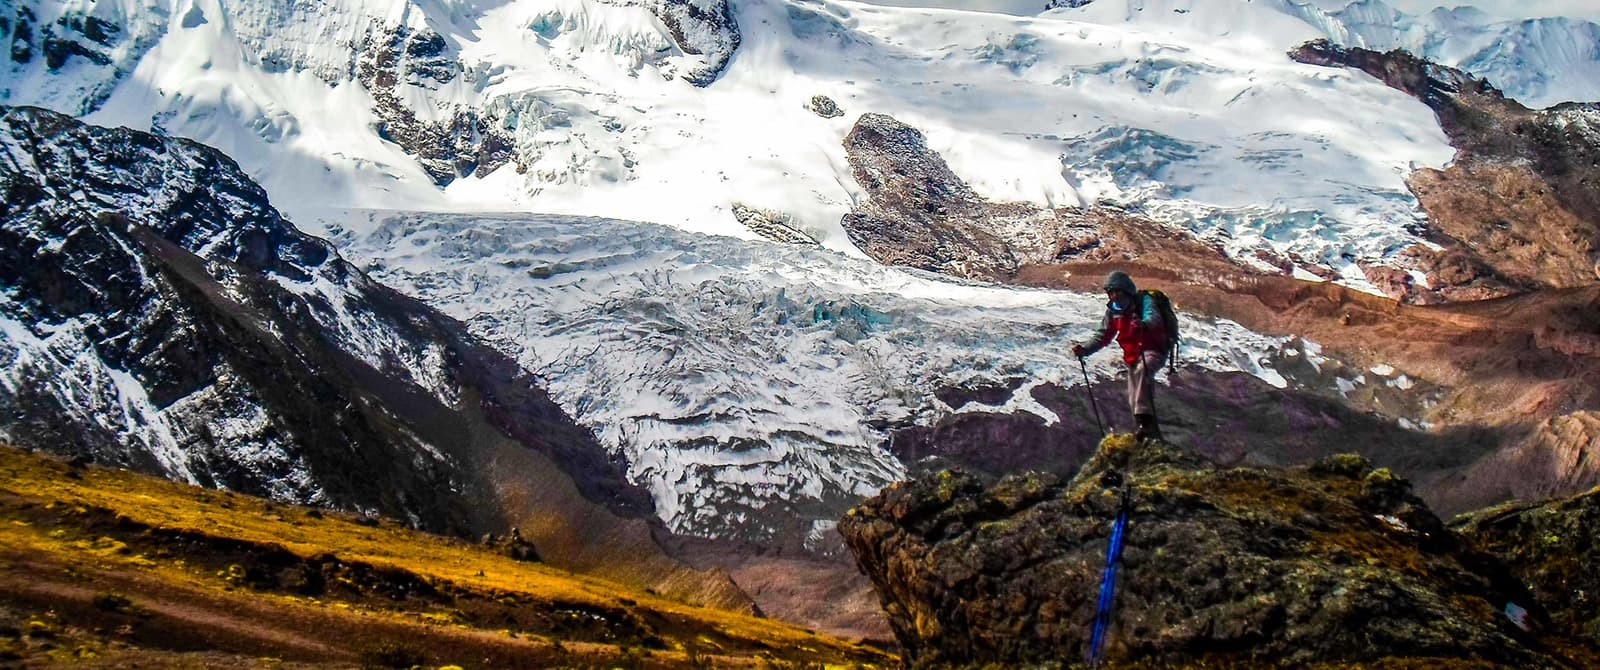 salkantay to machu picchu 7 days